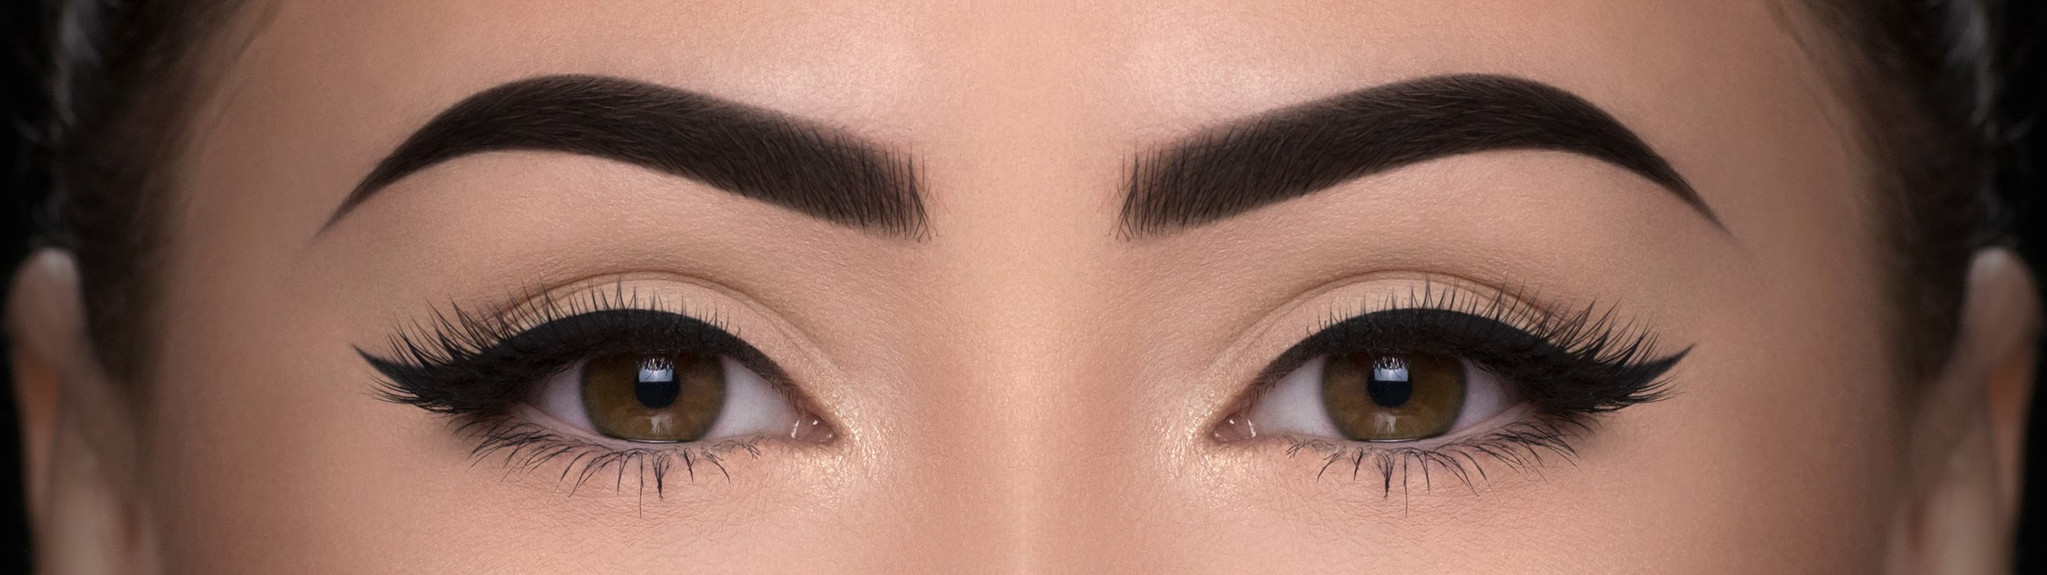 Brazilian Brow Black henna